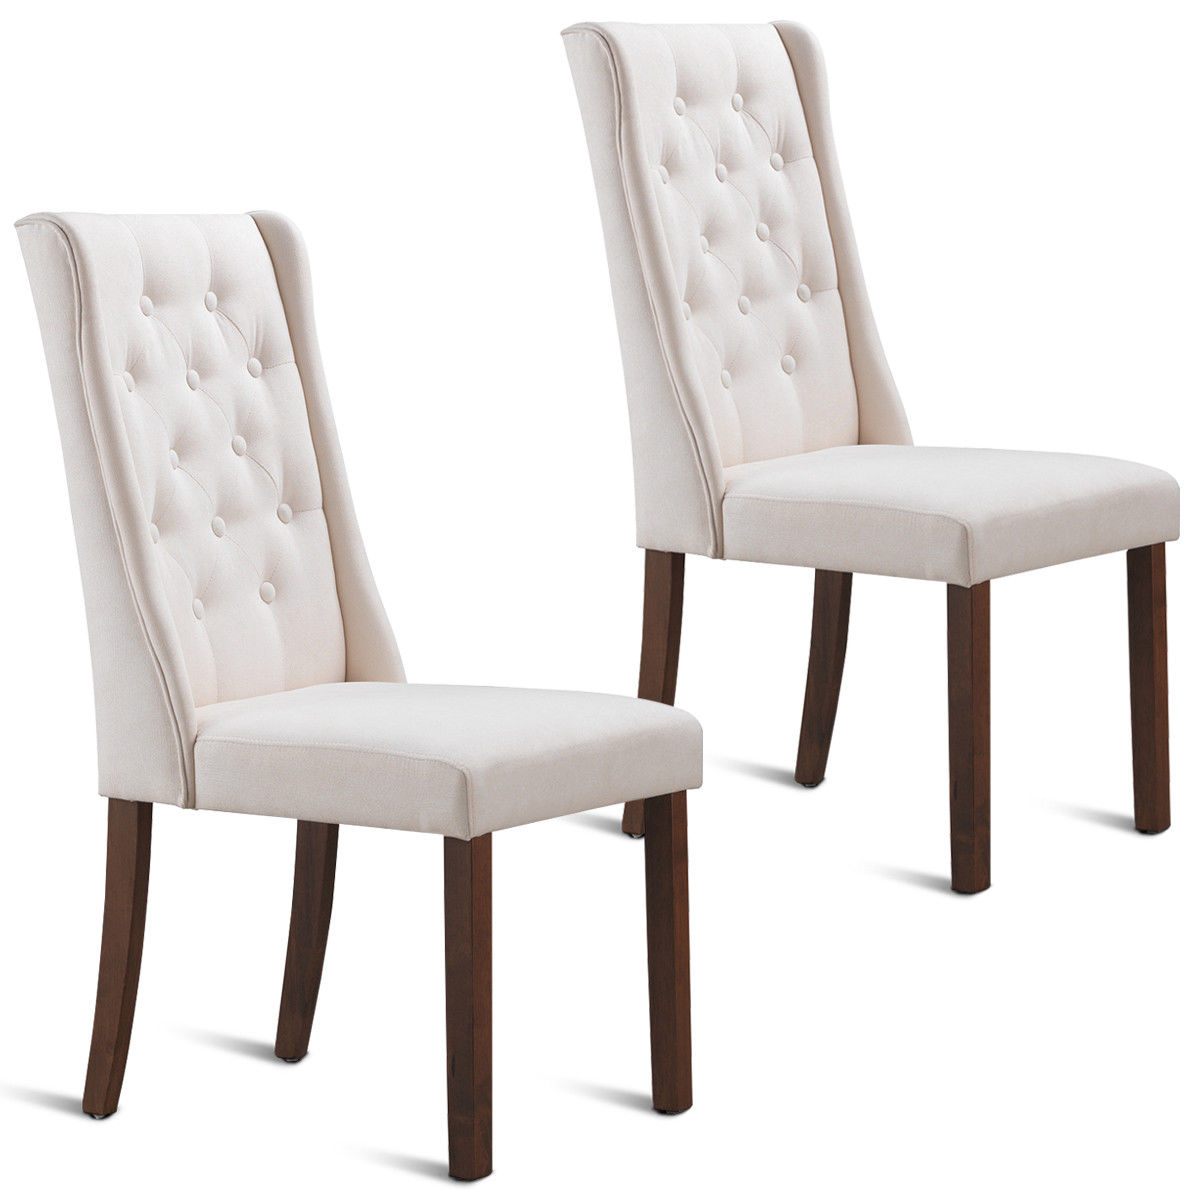 Set Of Accent Chairs Gymax Set Of 2 Fabric Dining Chairs Armless Tufted Accent